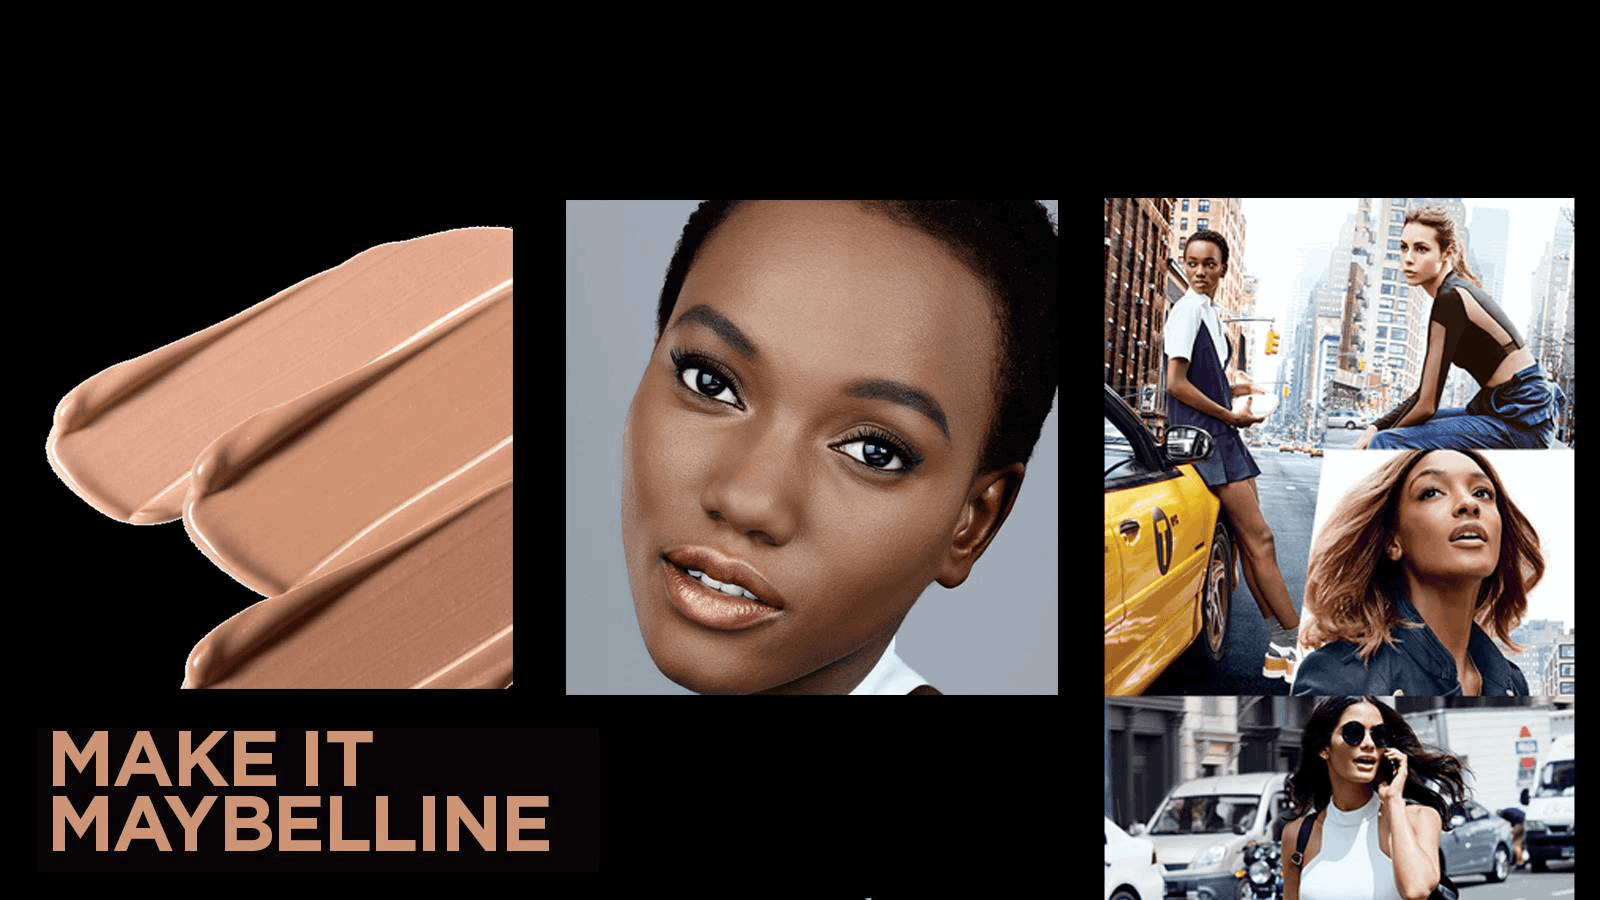 Maybelline-Face-Foundation-Fit-Me-Header-Image-1600x900